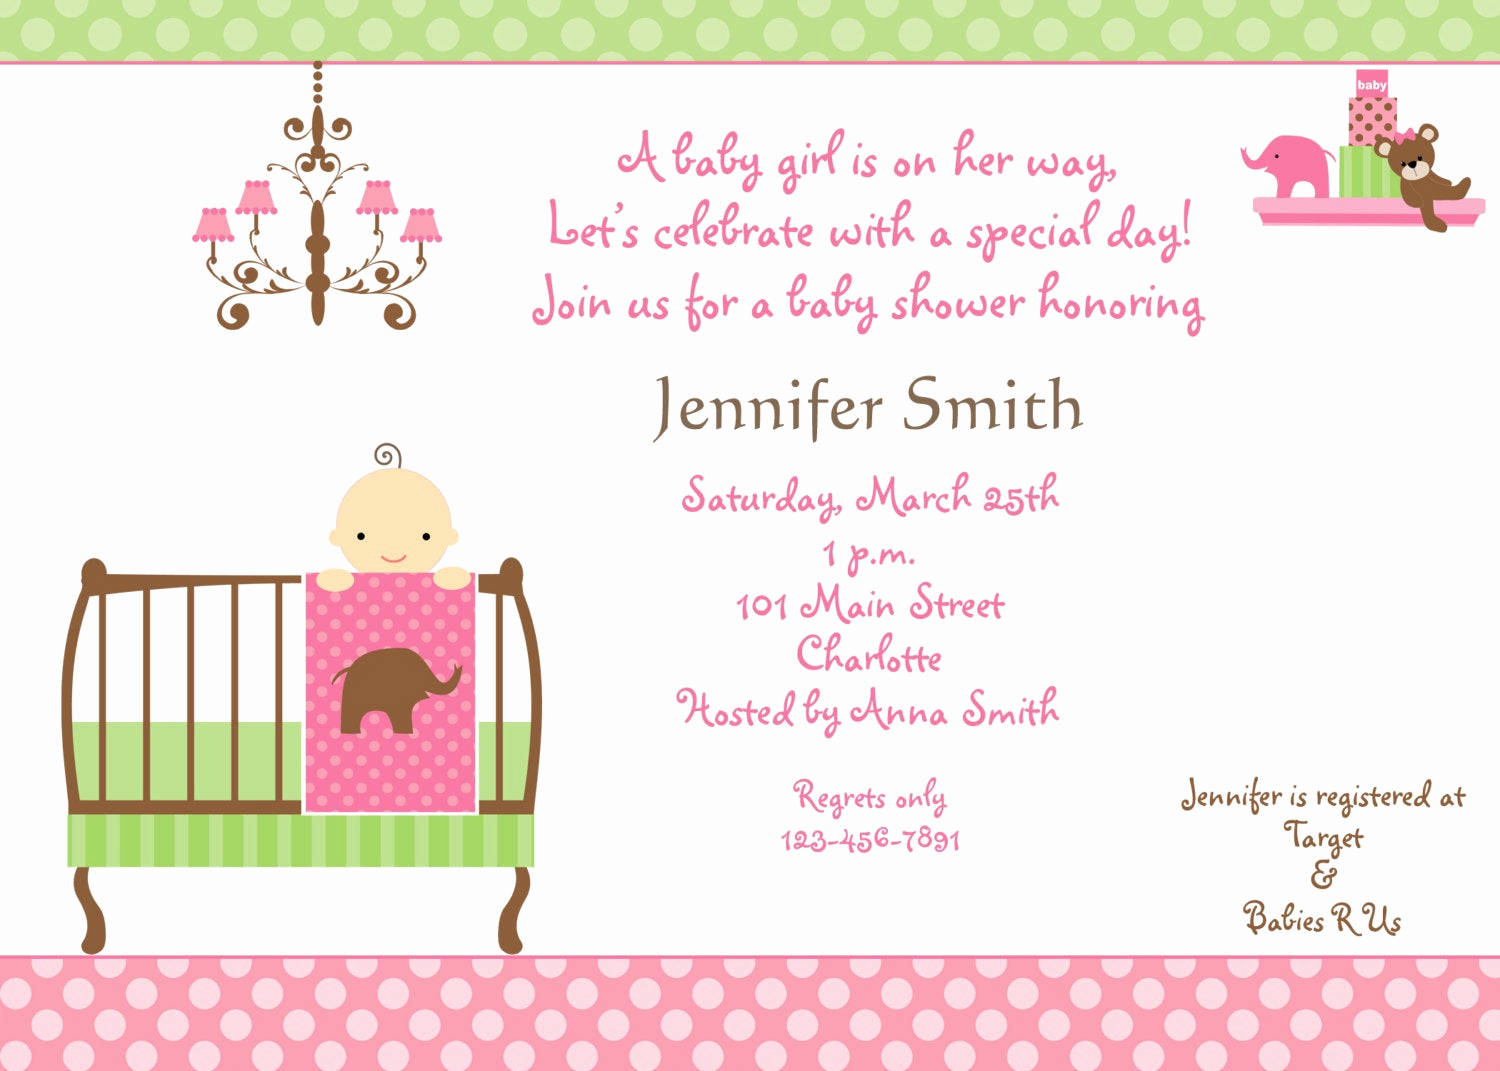 Baby Shower Invitation for Girl Awesome Baby Shower Invitation Baby Girl Shower Invitation You